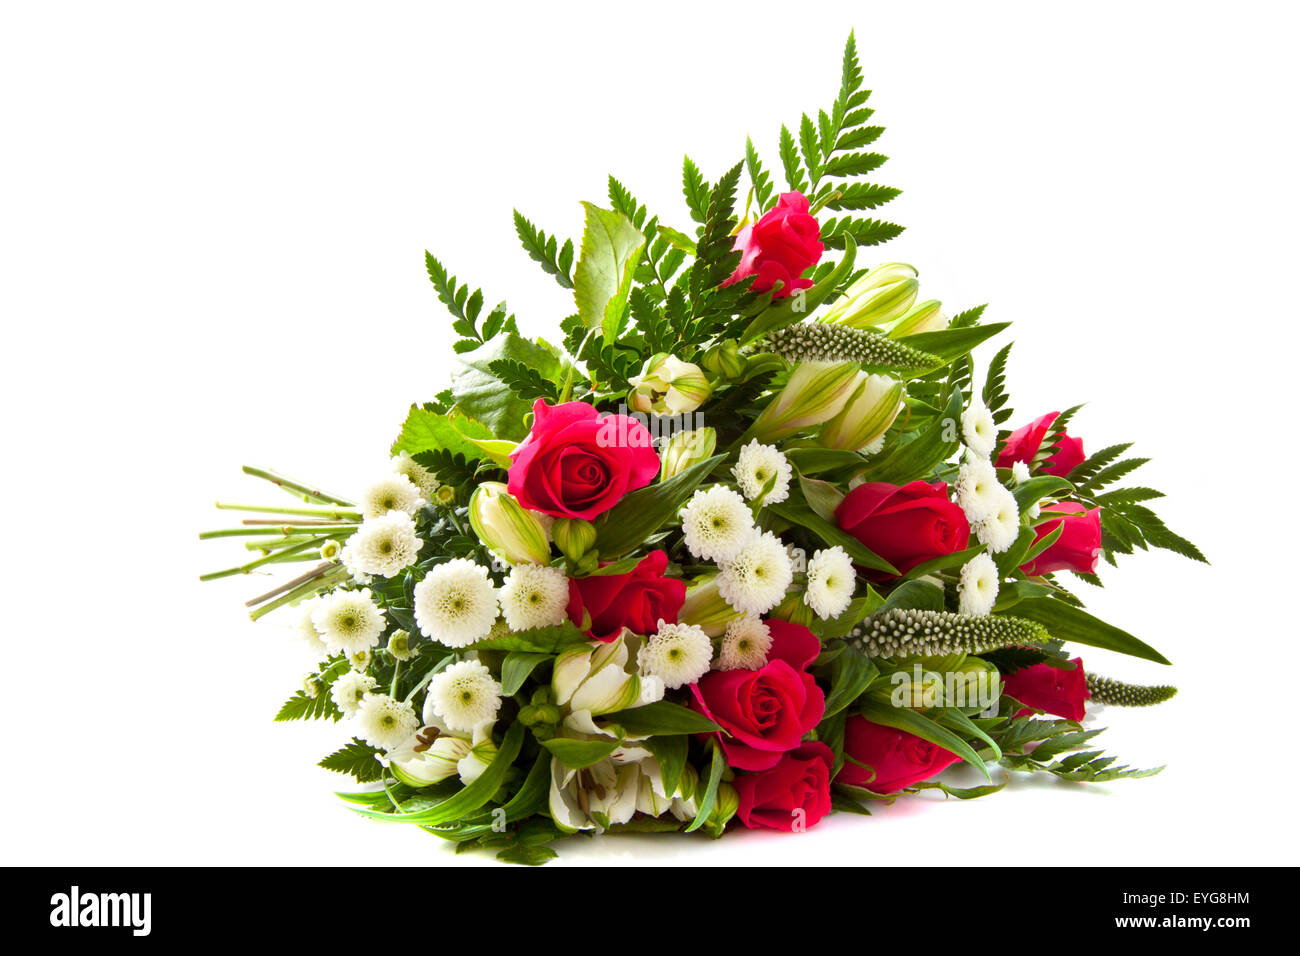 Funeral flowers white stock photos funeral flowers white stock beautiful bouquet with different kind of flowers over white stock image izmirmasajfo